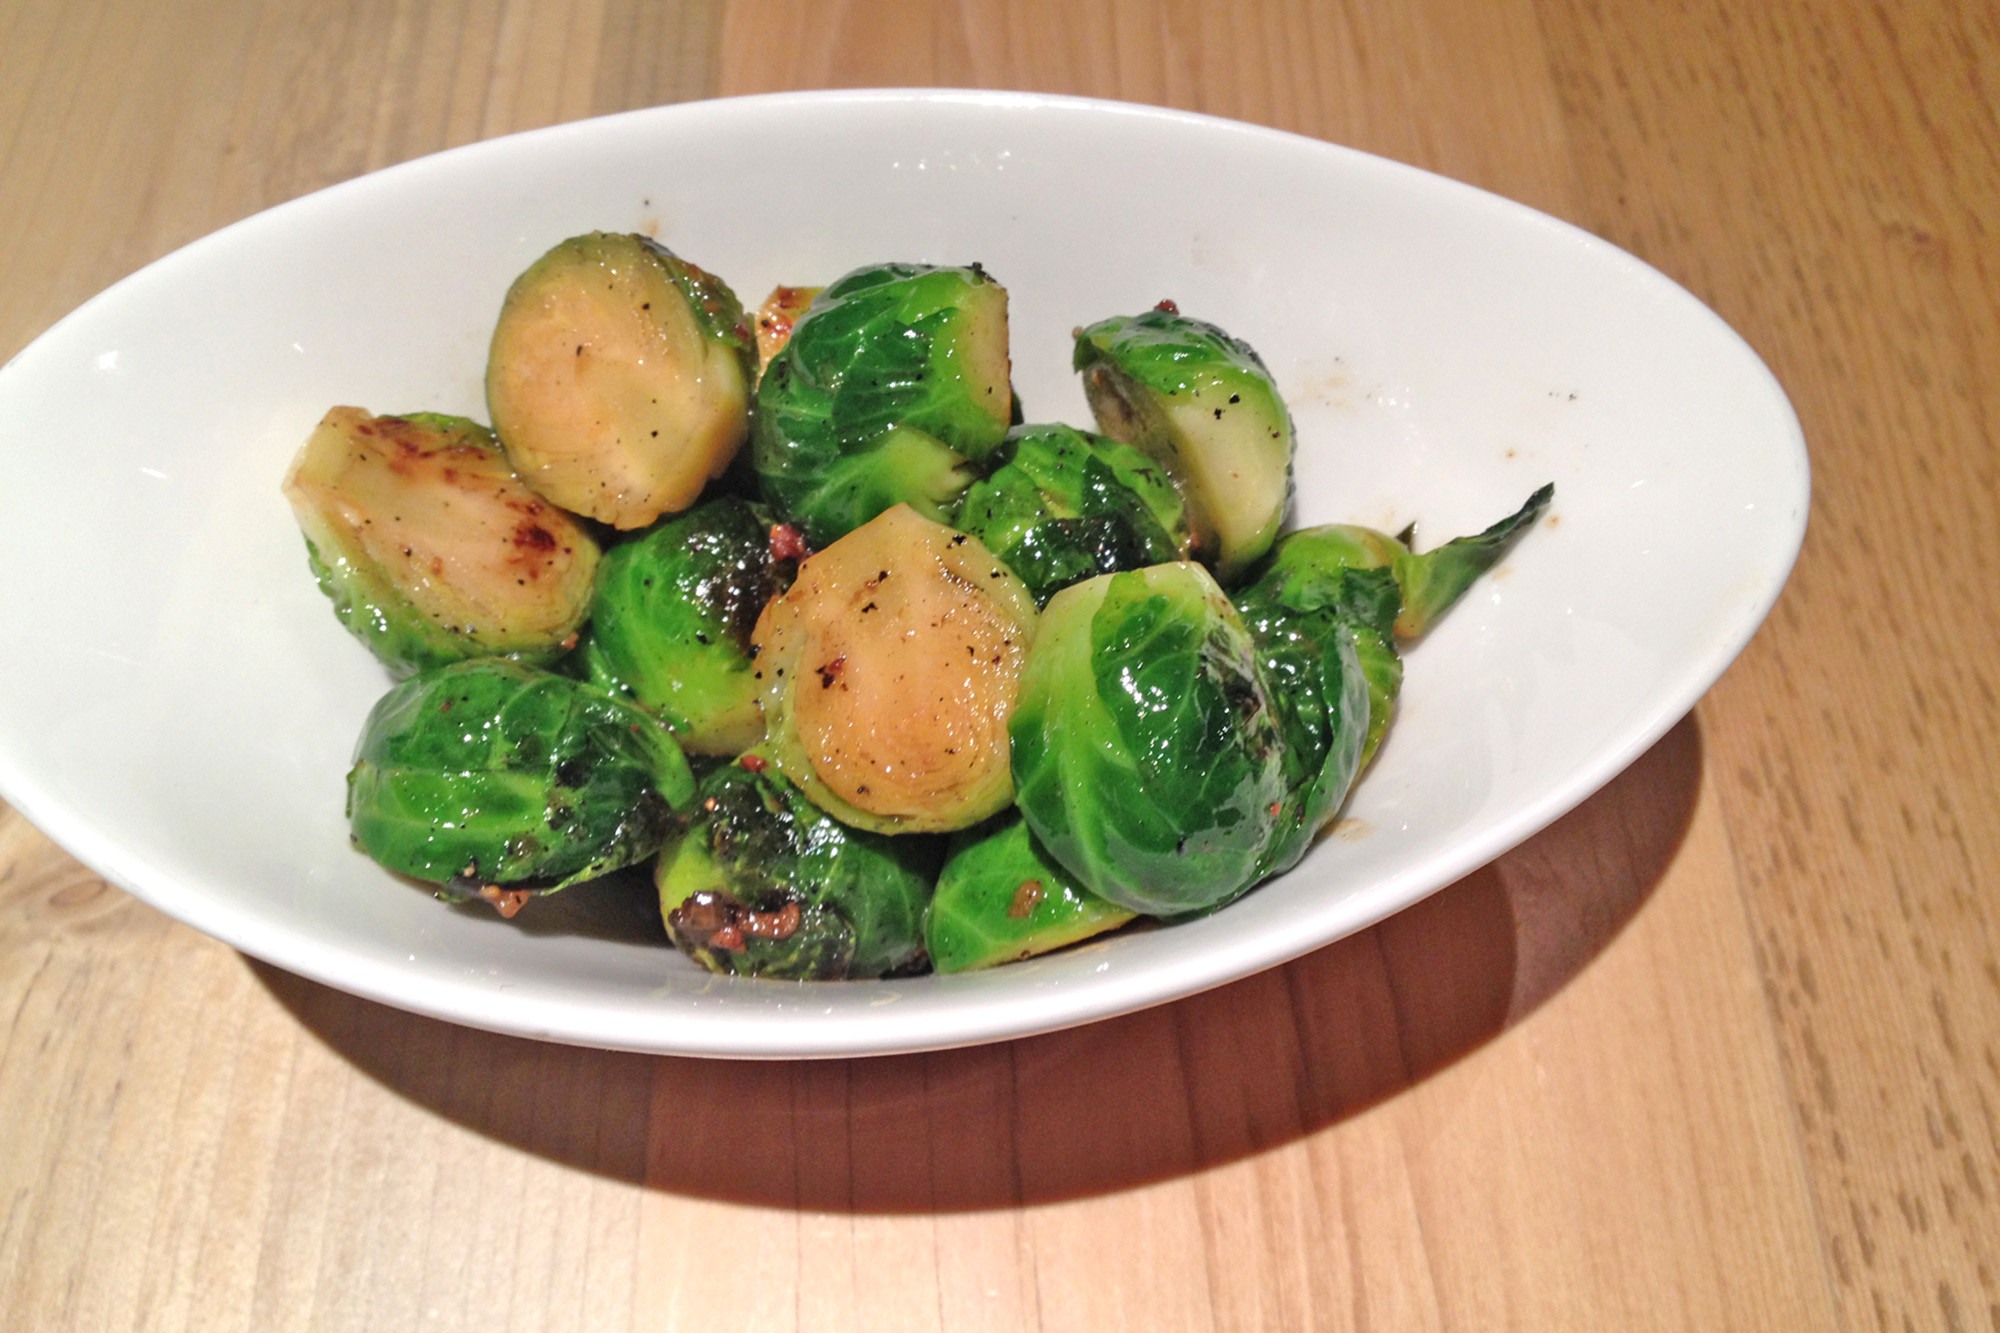 The crisp and vibrant green Brussels spouts are tossed in a warm bacon vinaigrette.